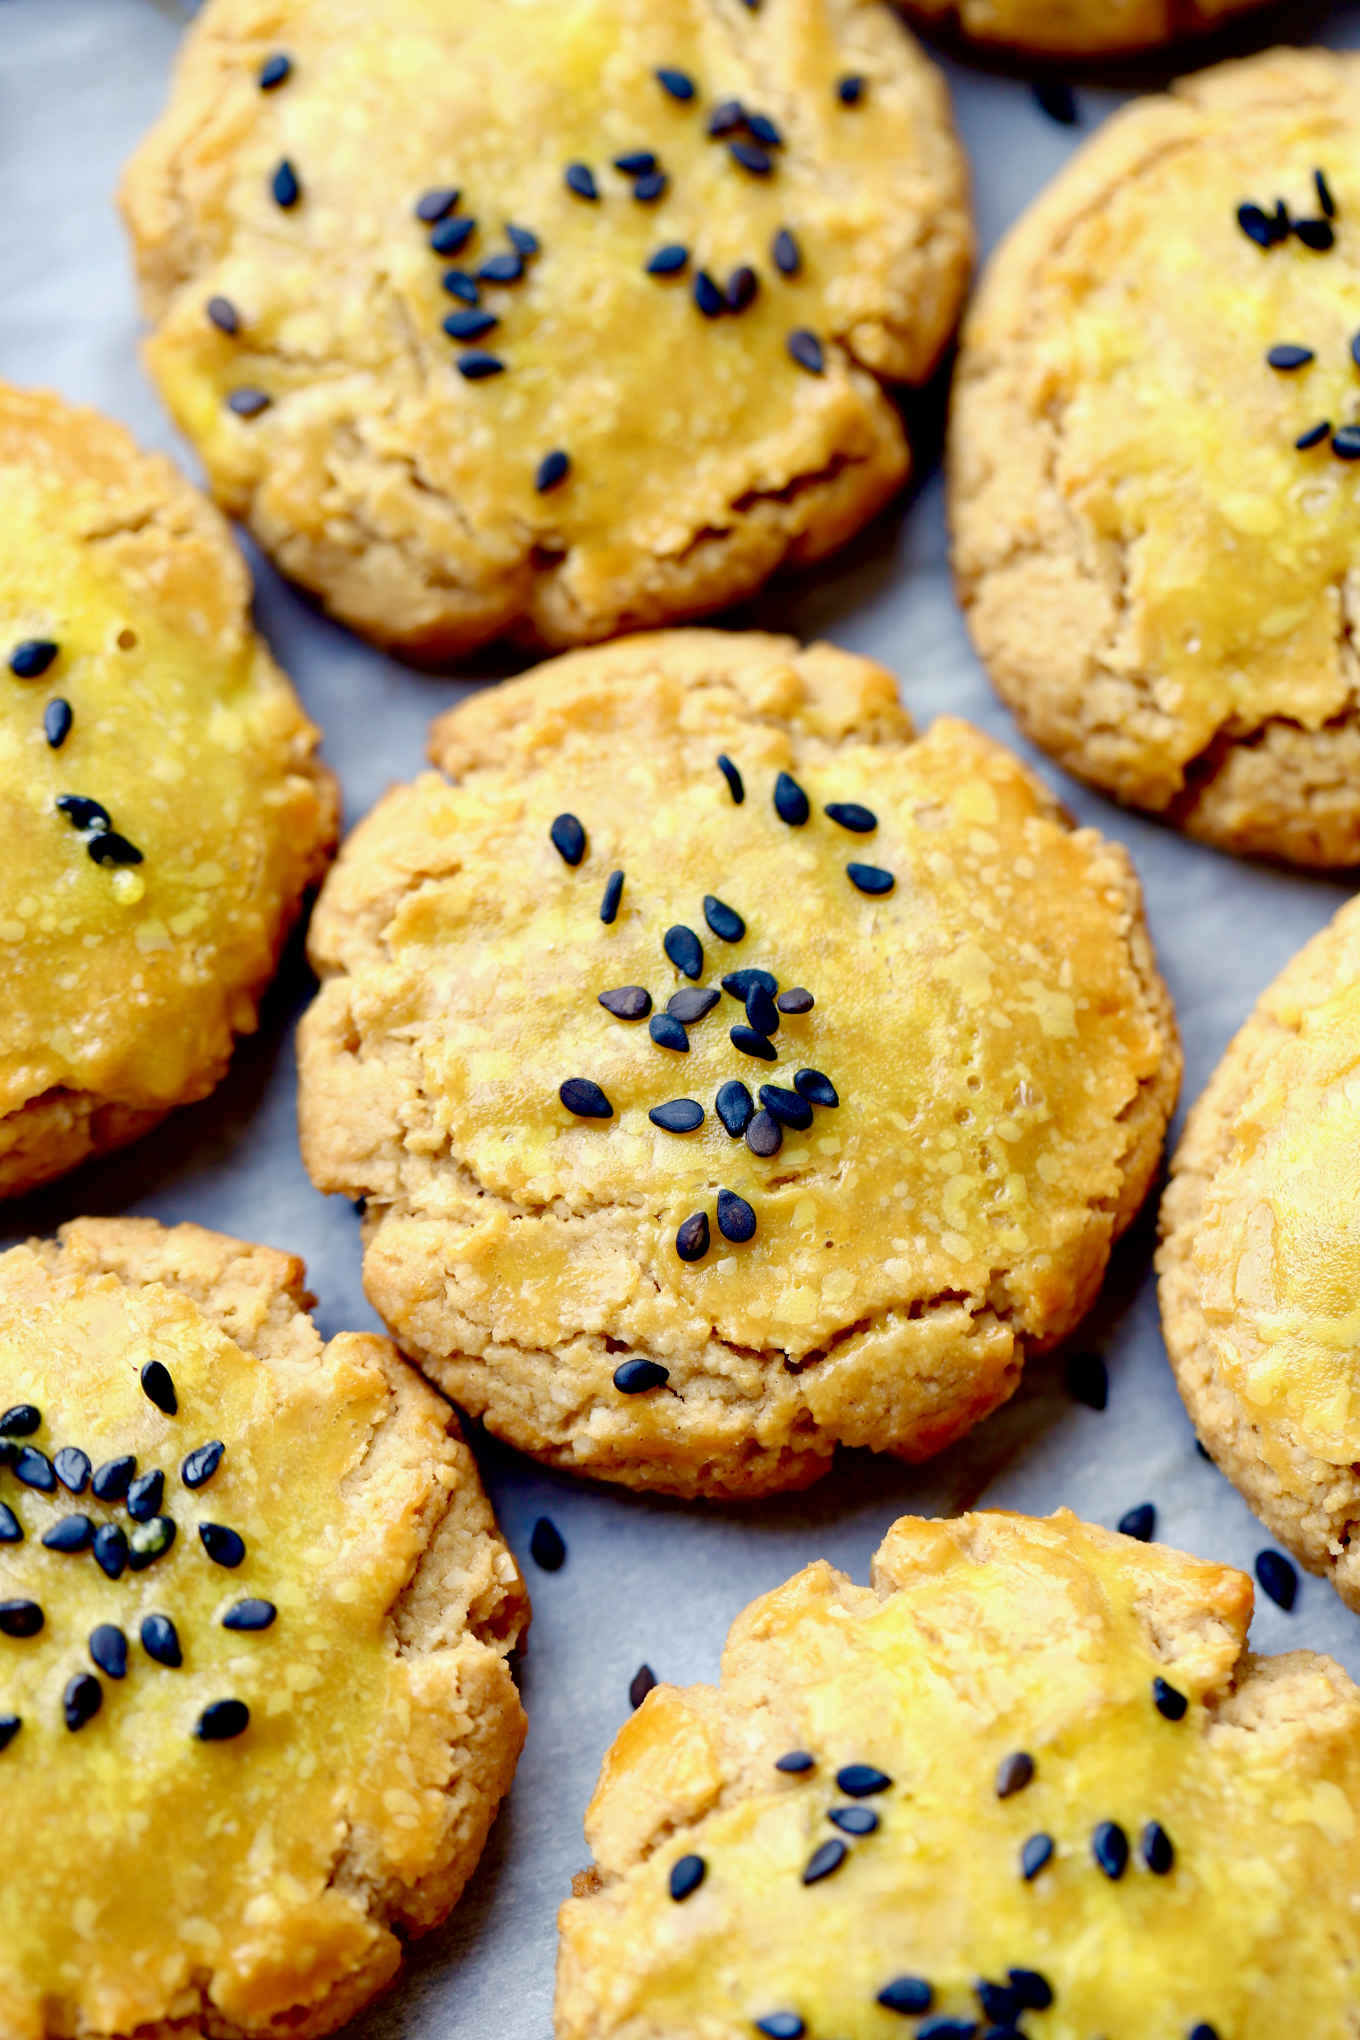 a closeup of buttery, crumbly, moist, light and nutty sorghum almond cookies, topped with a shiny egg glaze and black sesame seeds